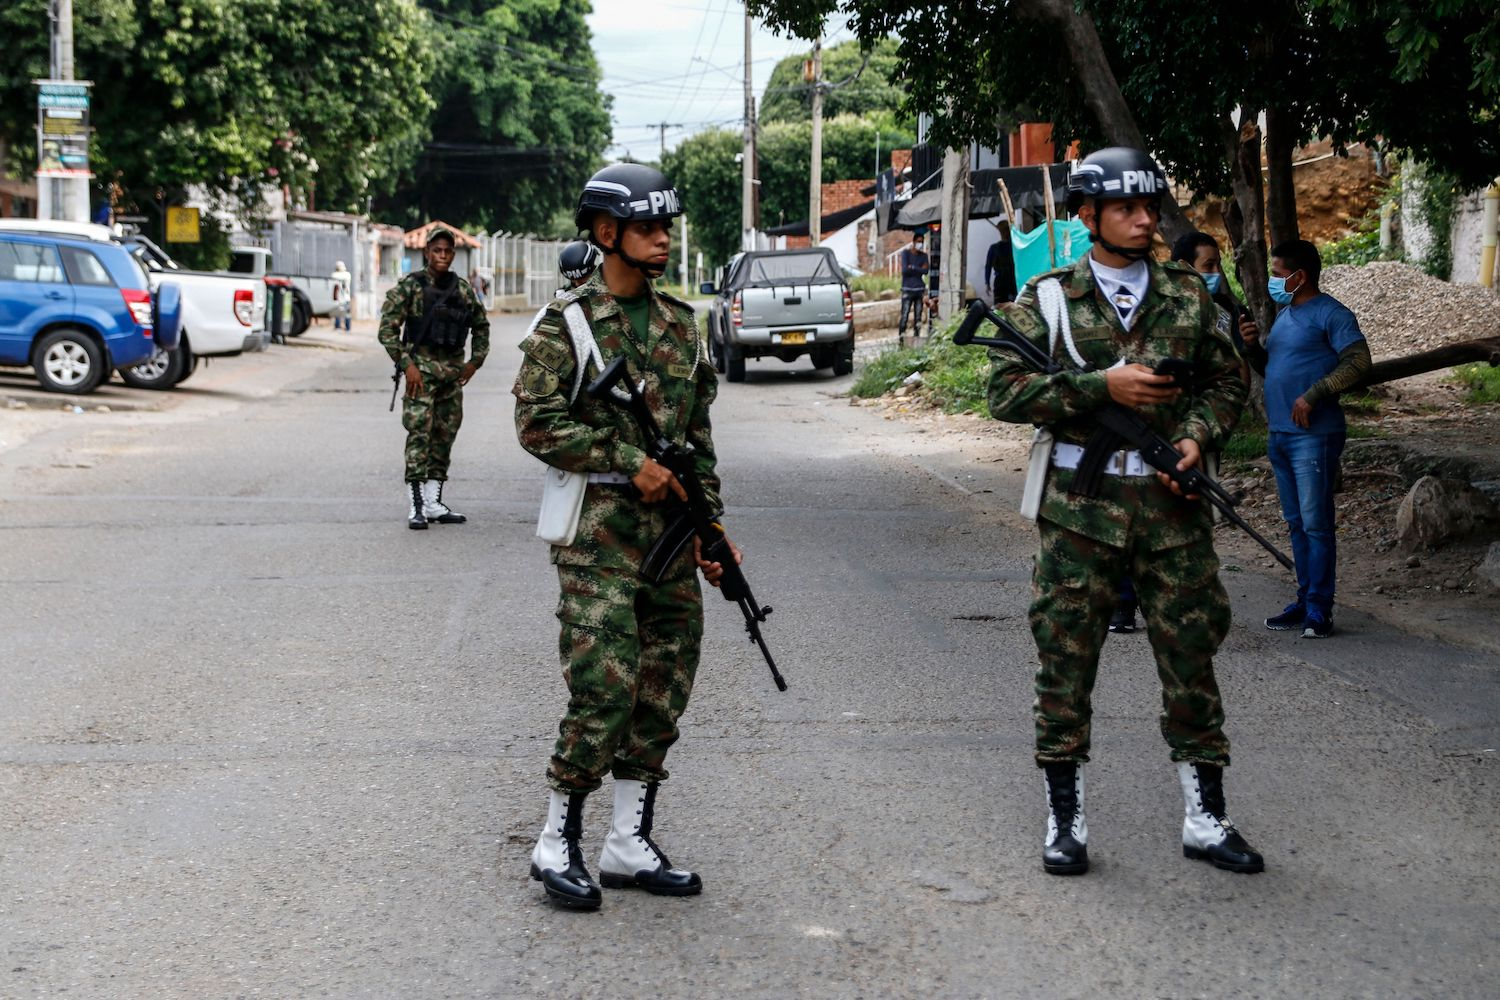 Soldiers stand guard near a military unit in Cucuta, Colombia, on the border with Venezuela, on June 15.